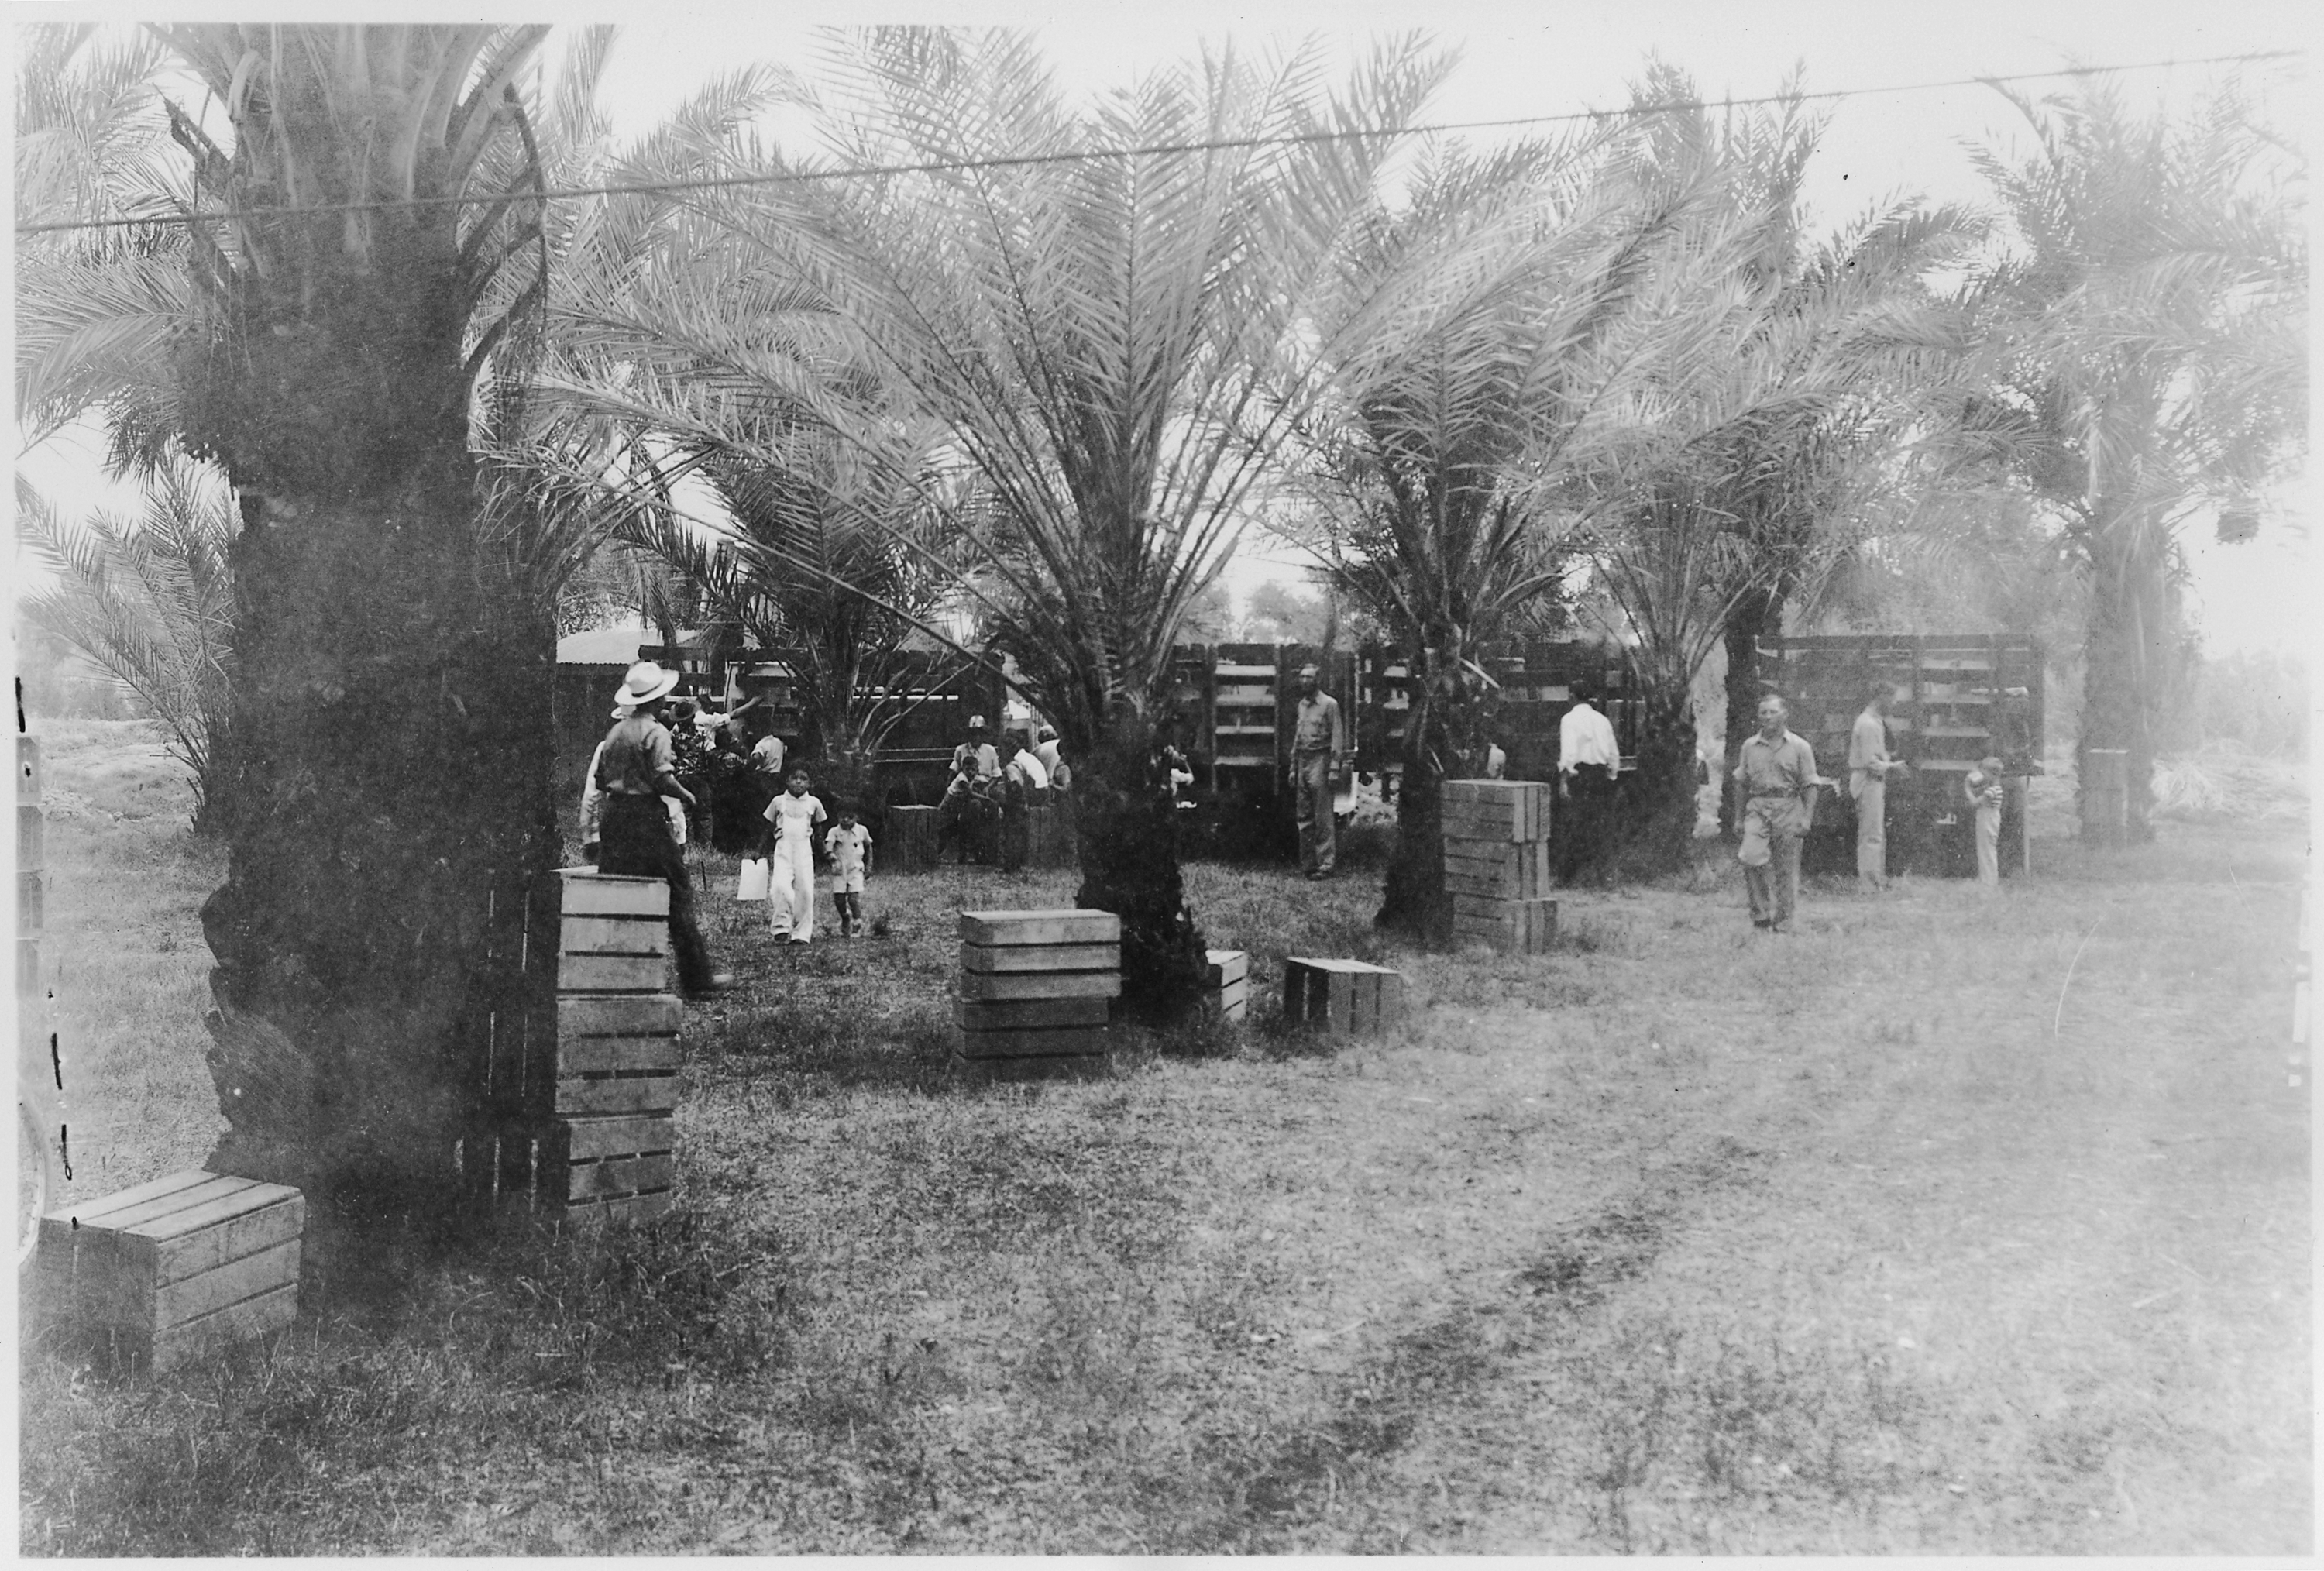 Arizona yuma county gadsden - File Ccc Camp Br 74 Yuma Project Gadsden Park Arizona Photo Of